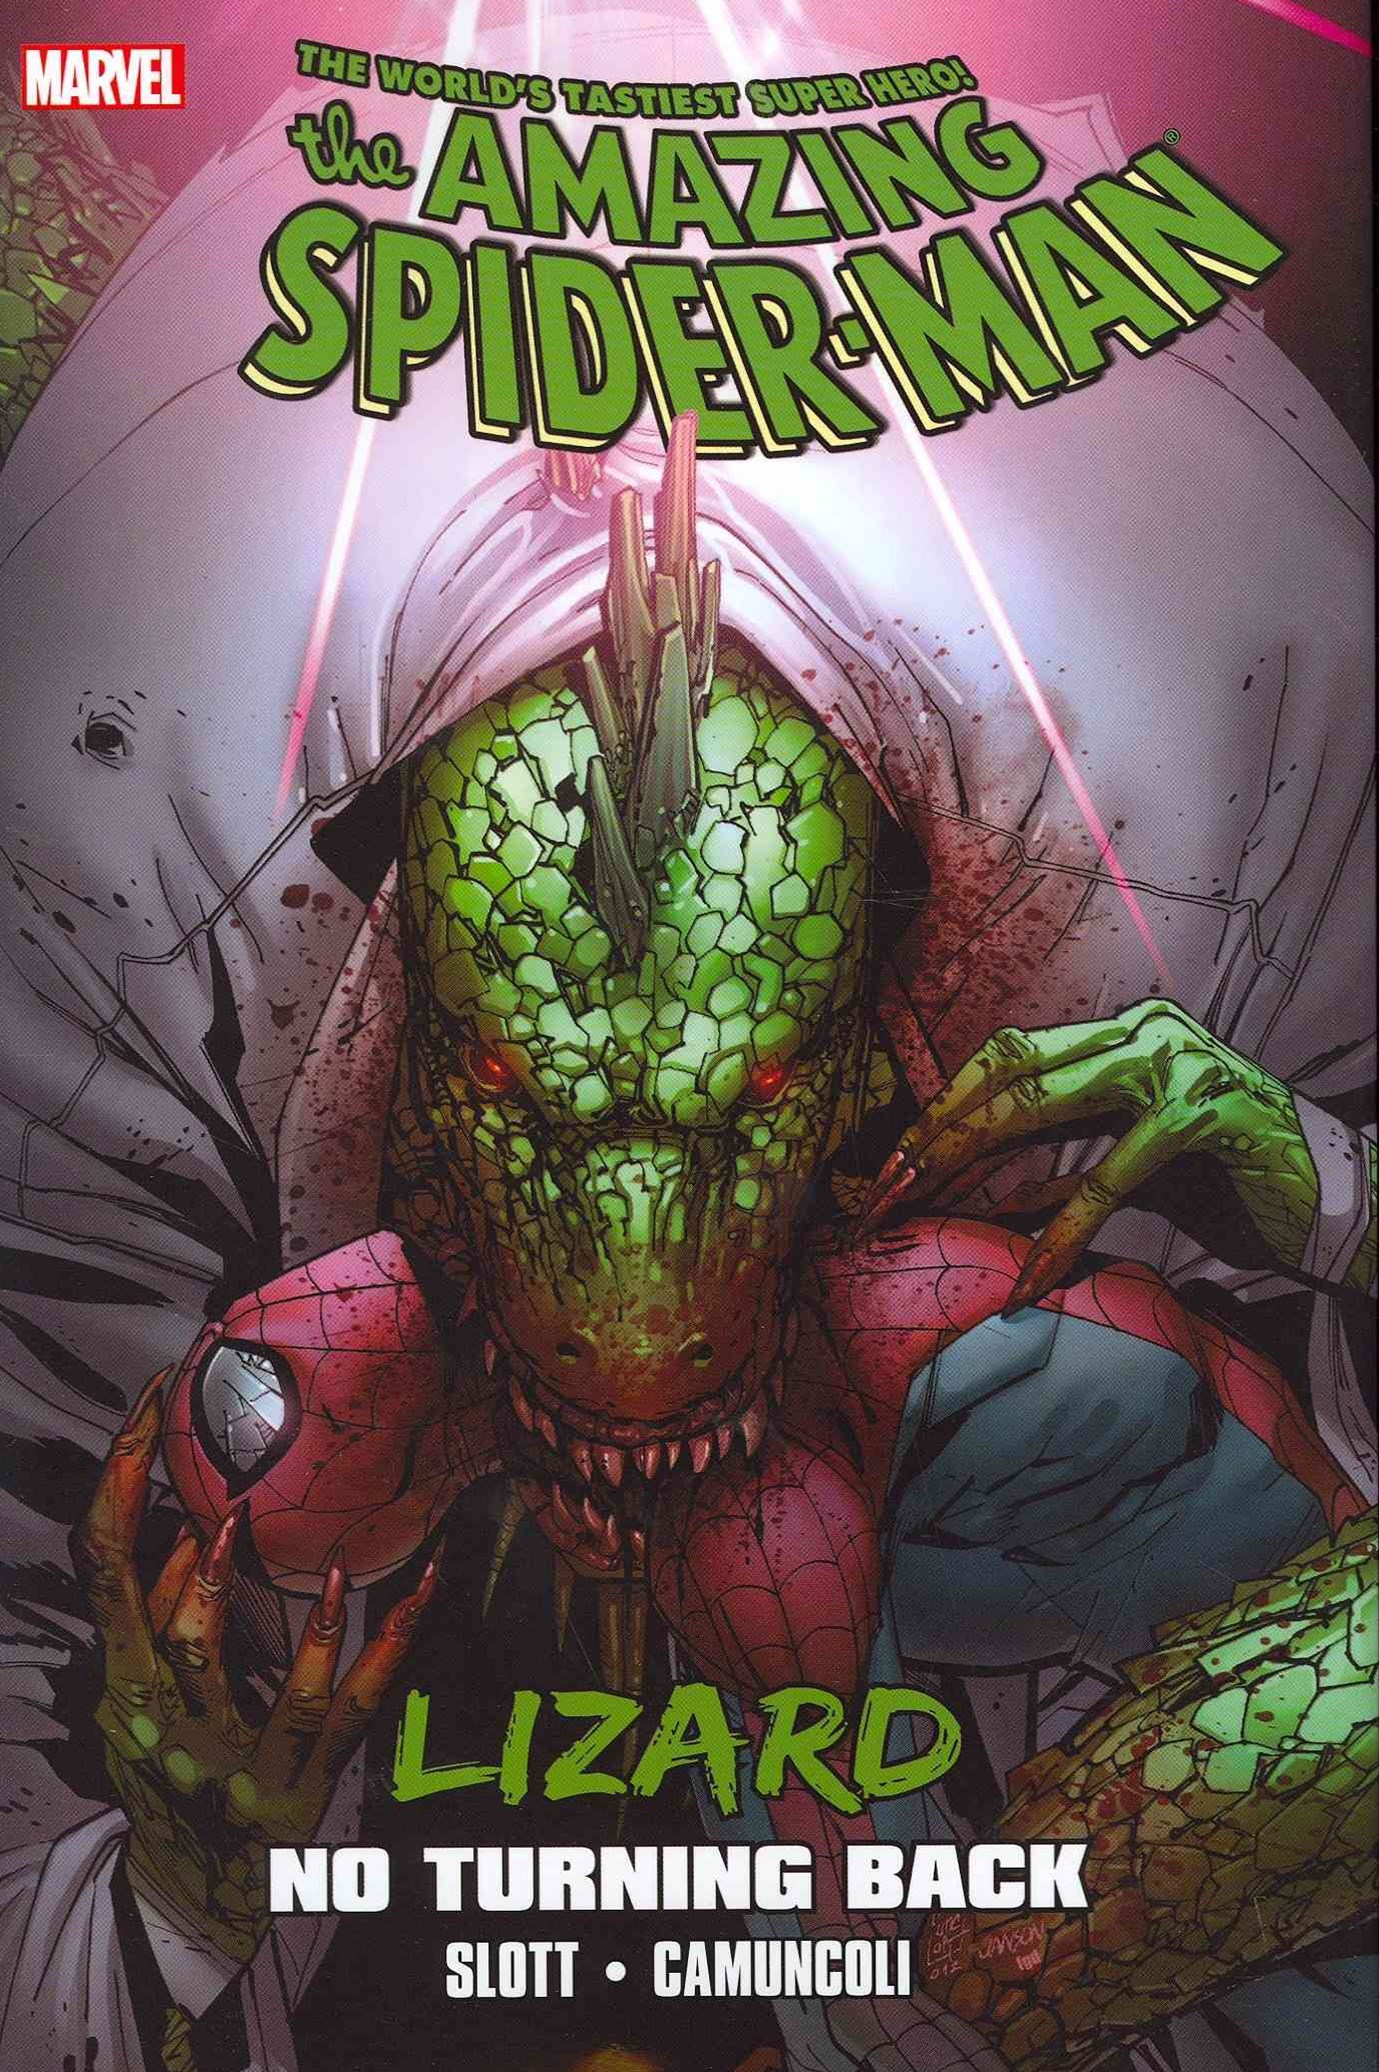 Spider-Man: Lizard